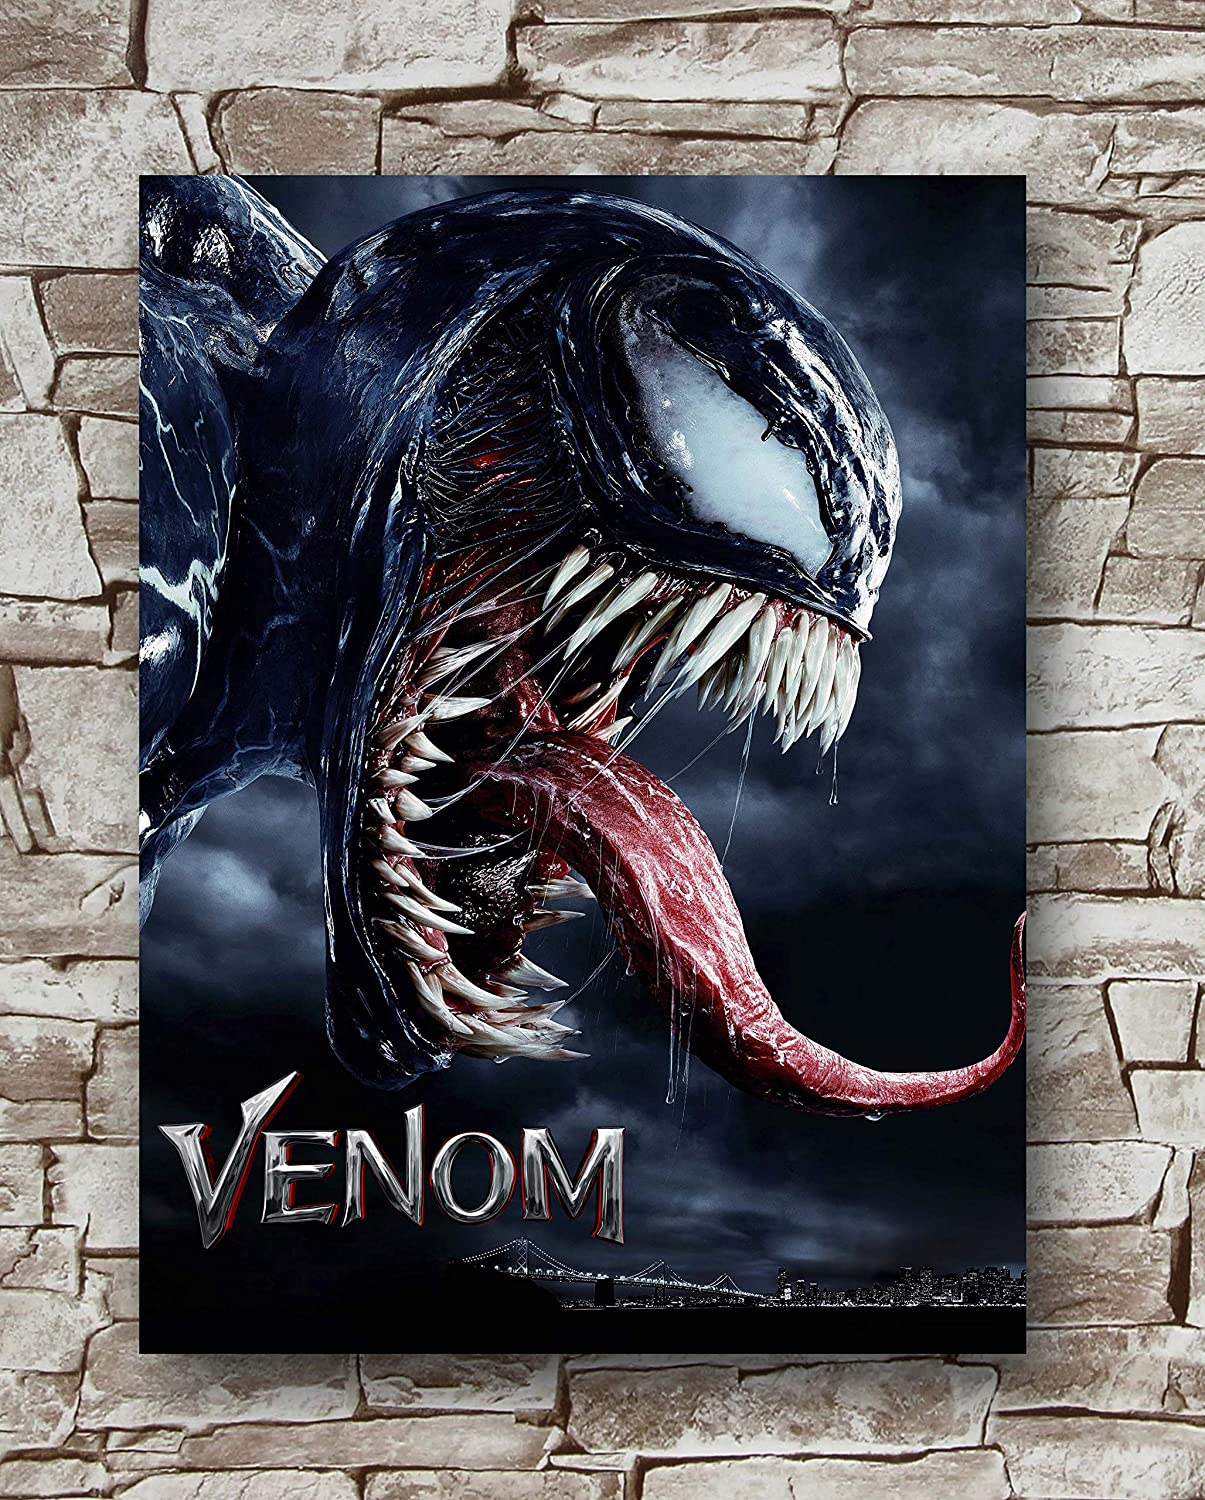 Venom Poster Standard Size | 18-Inches by 24-Inches | Venom Movie Posters Wall Poster Print